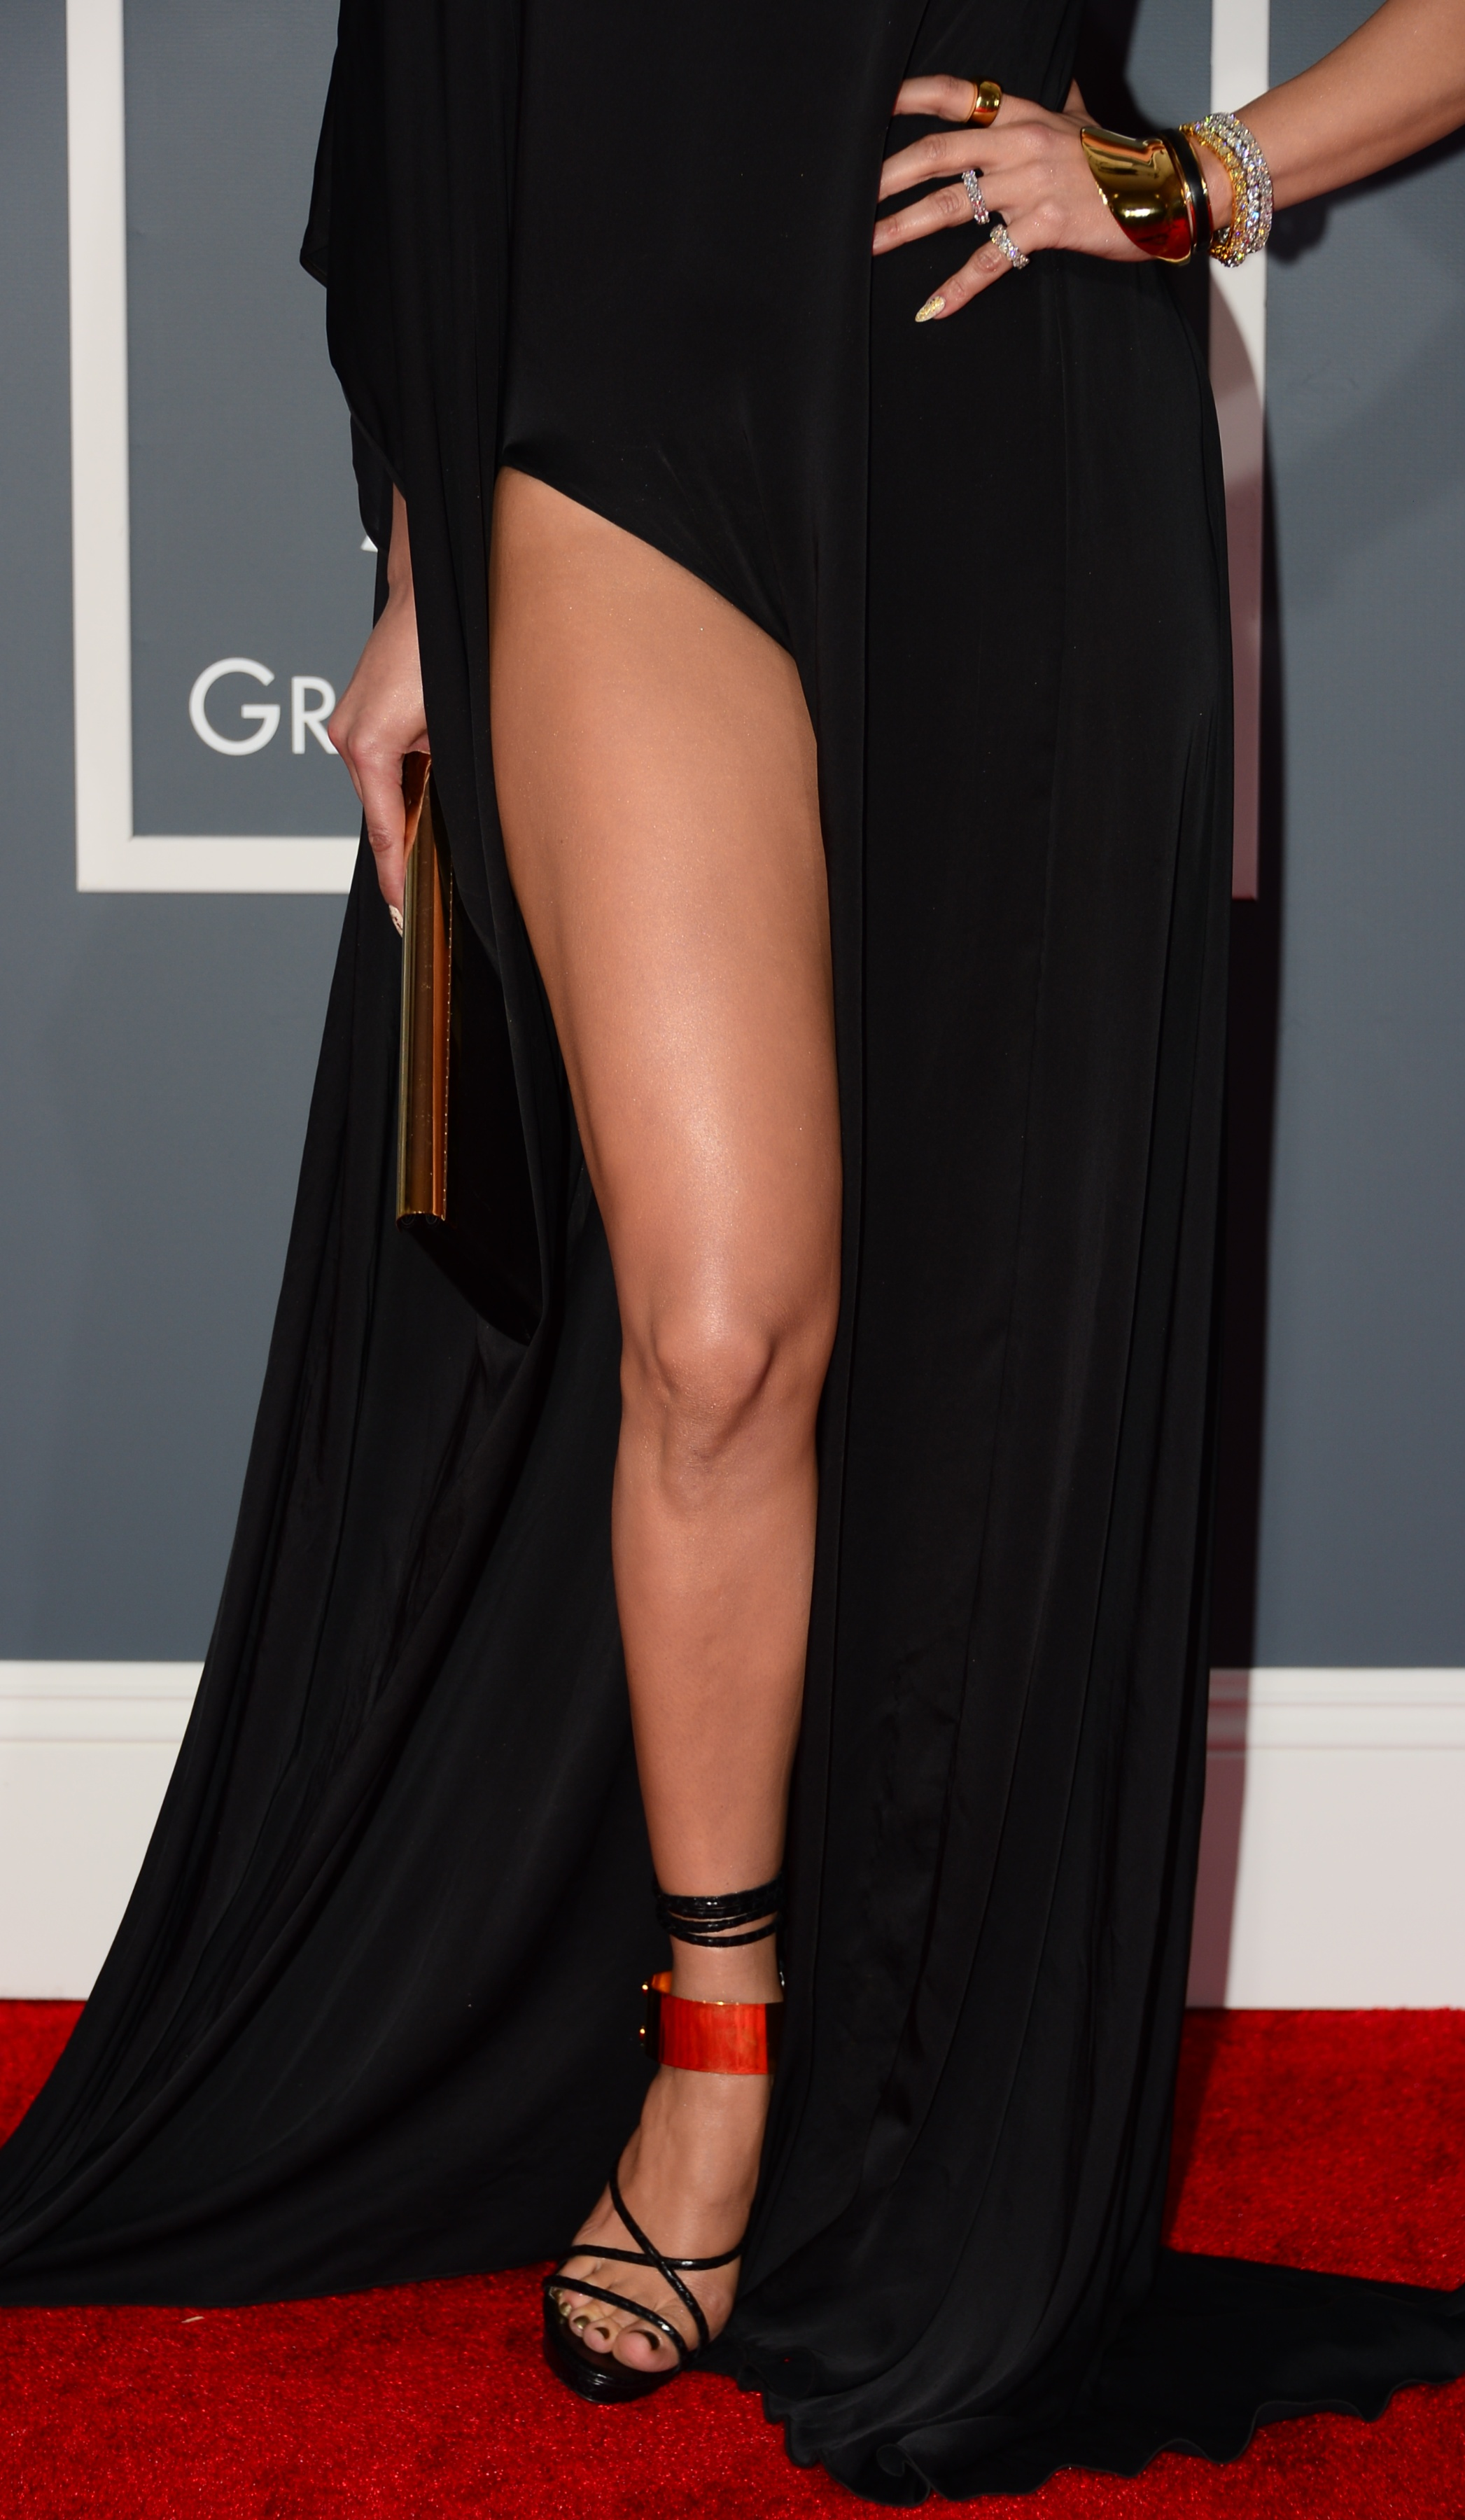 161402375 JLos Leg Stumps Cleavage at GRAMMYS